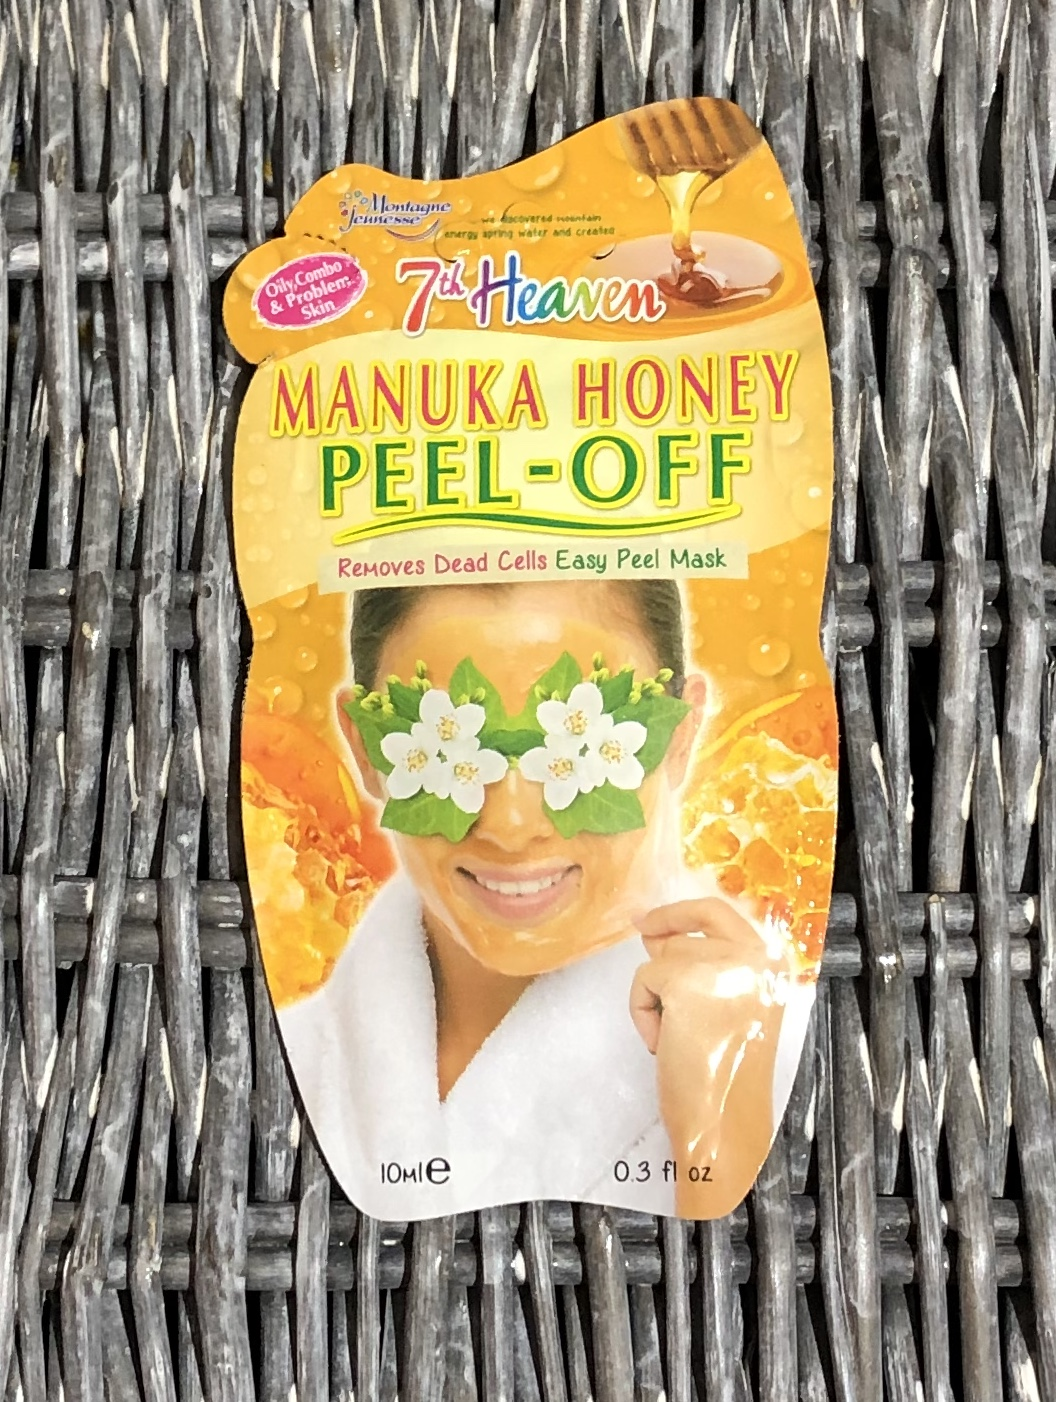 7th Heaven Manuka Honey Peel-Off Mask Review graphic